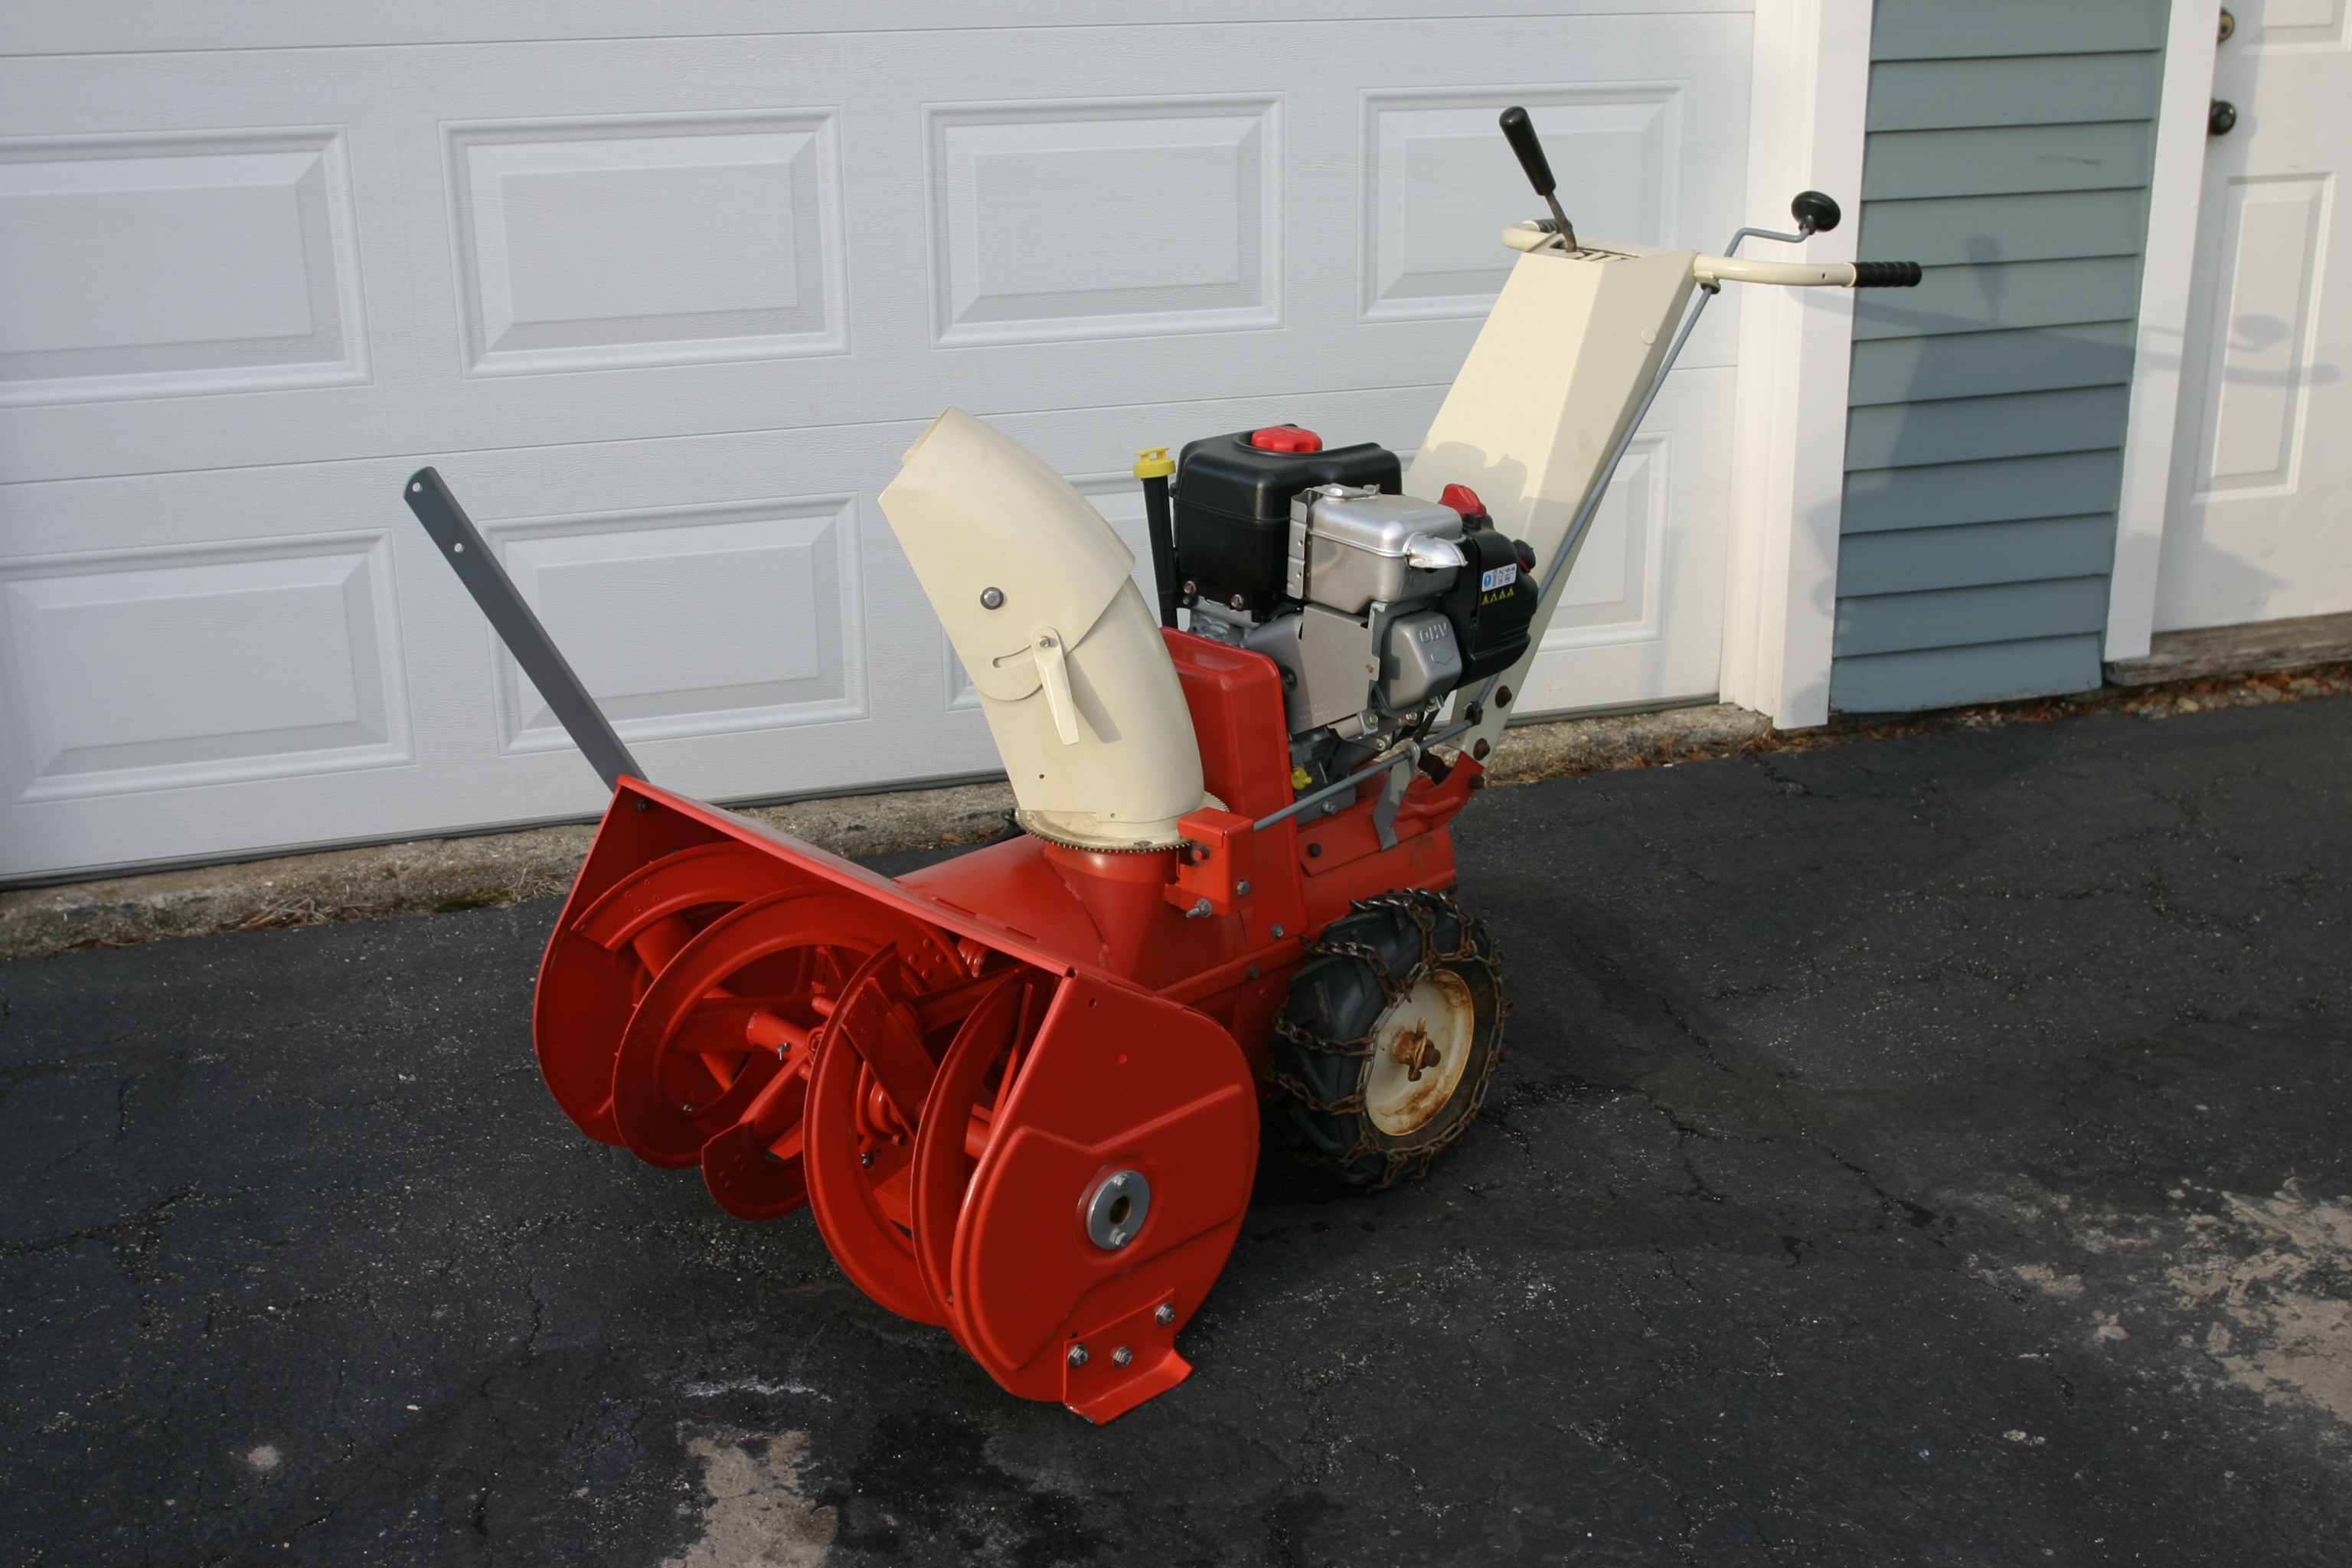 Red and white snowblower